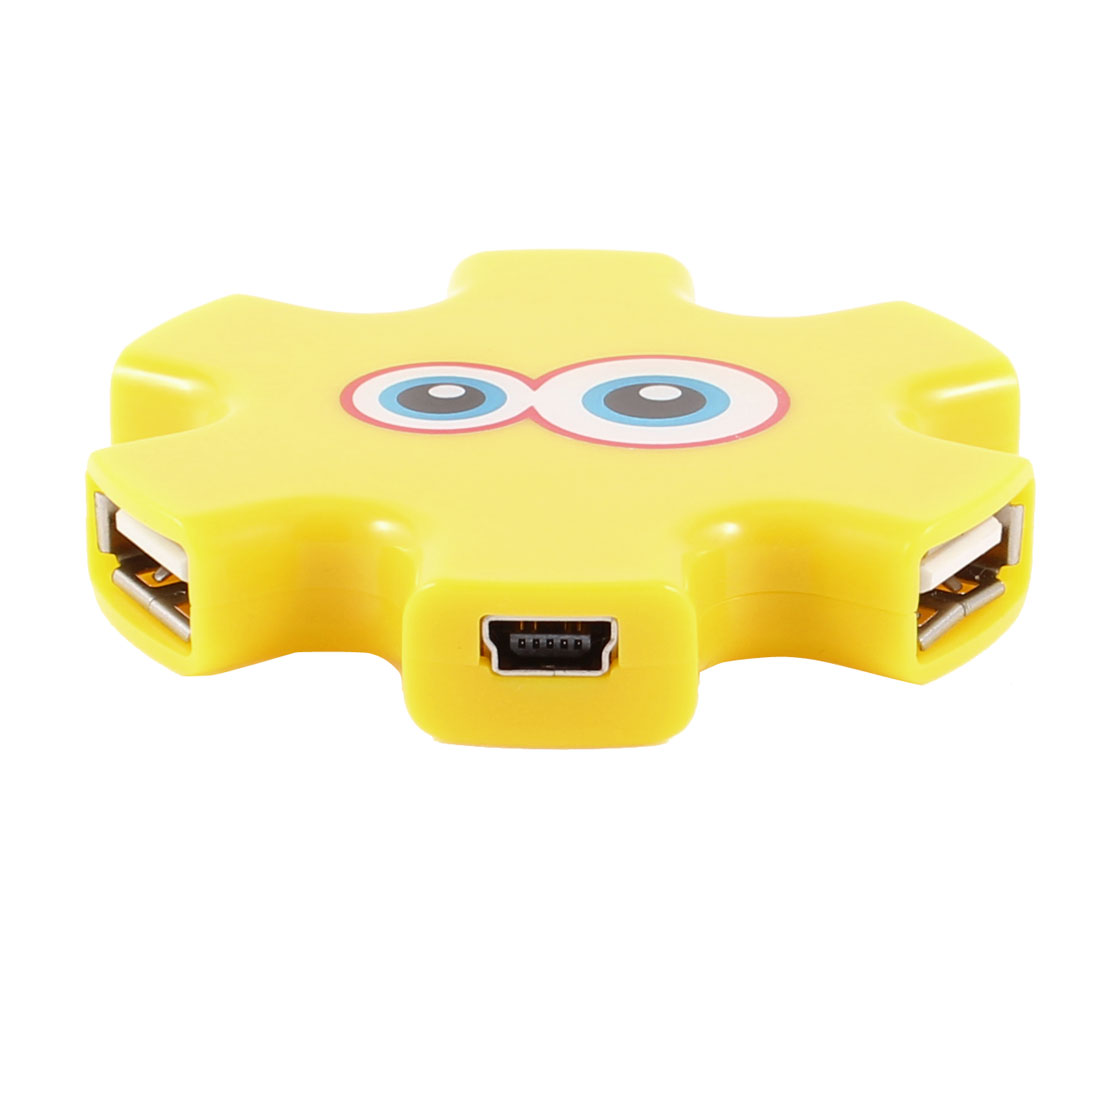 Yellow Plastic High Speed PC USB 2.0 4-Outport Hub Support WindowsXP 7 Linux 2.4